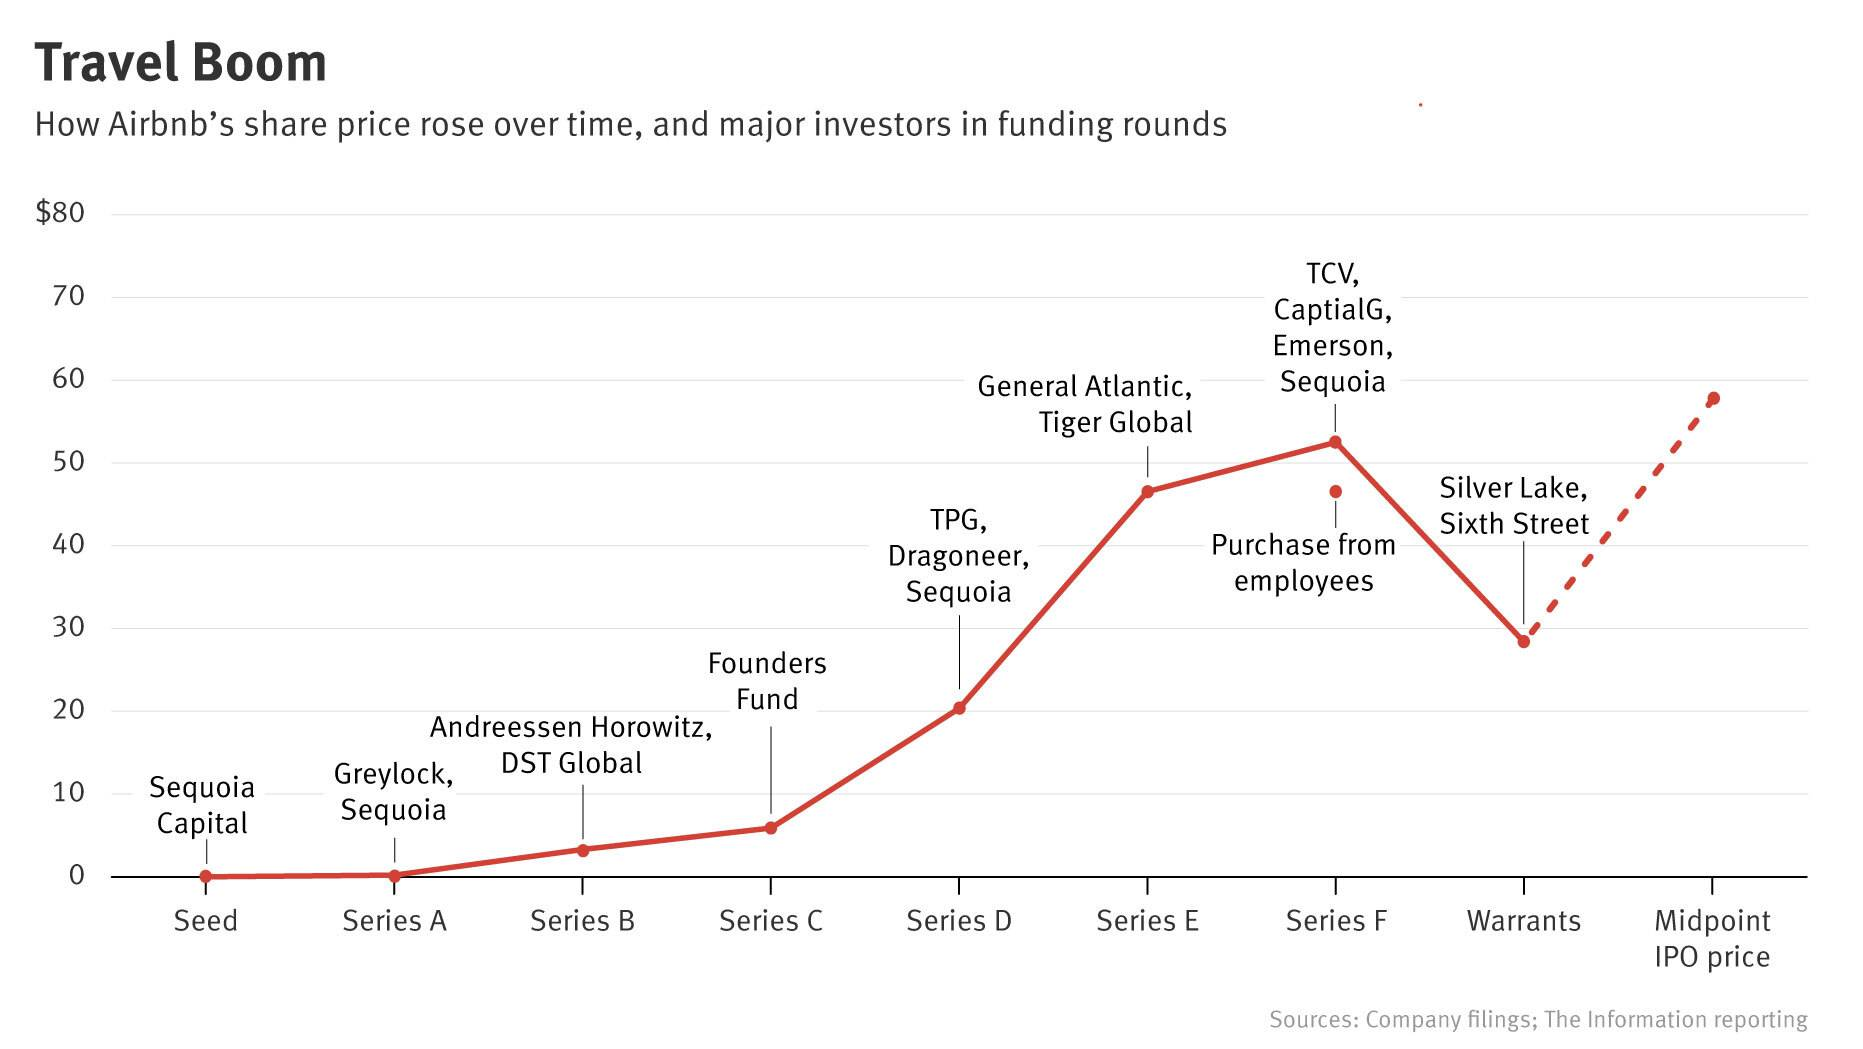 A line chart displaying Airbnb's share price over multiple funding rounds